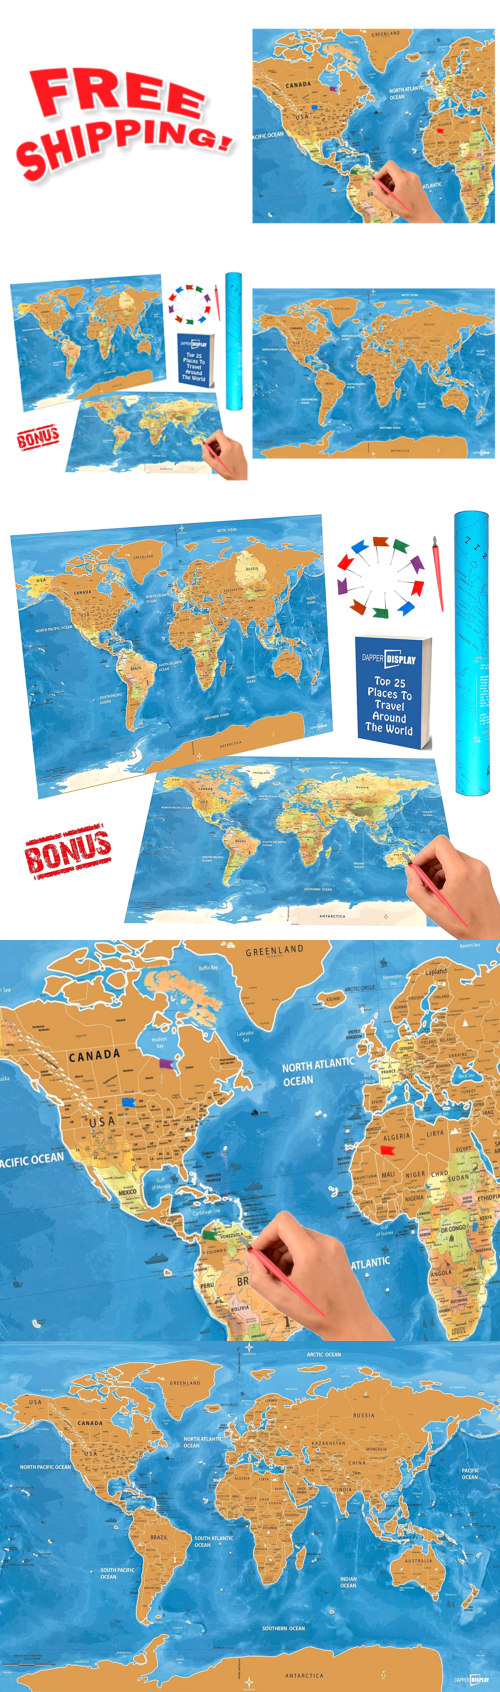 Other travel maps 164807 scratch off world travel map tracker flags other travel maps 164807 scratch off world travel map tracker flags pins scratcher pen tool gumiabroncs